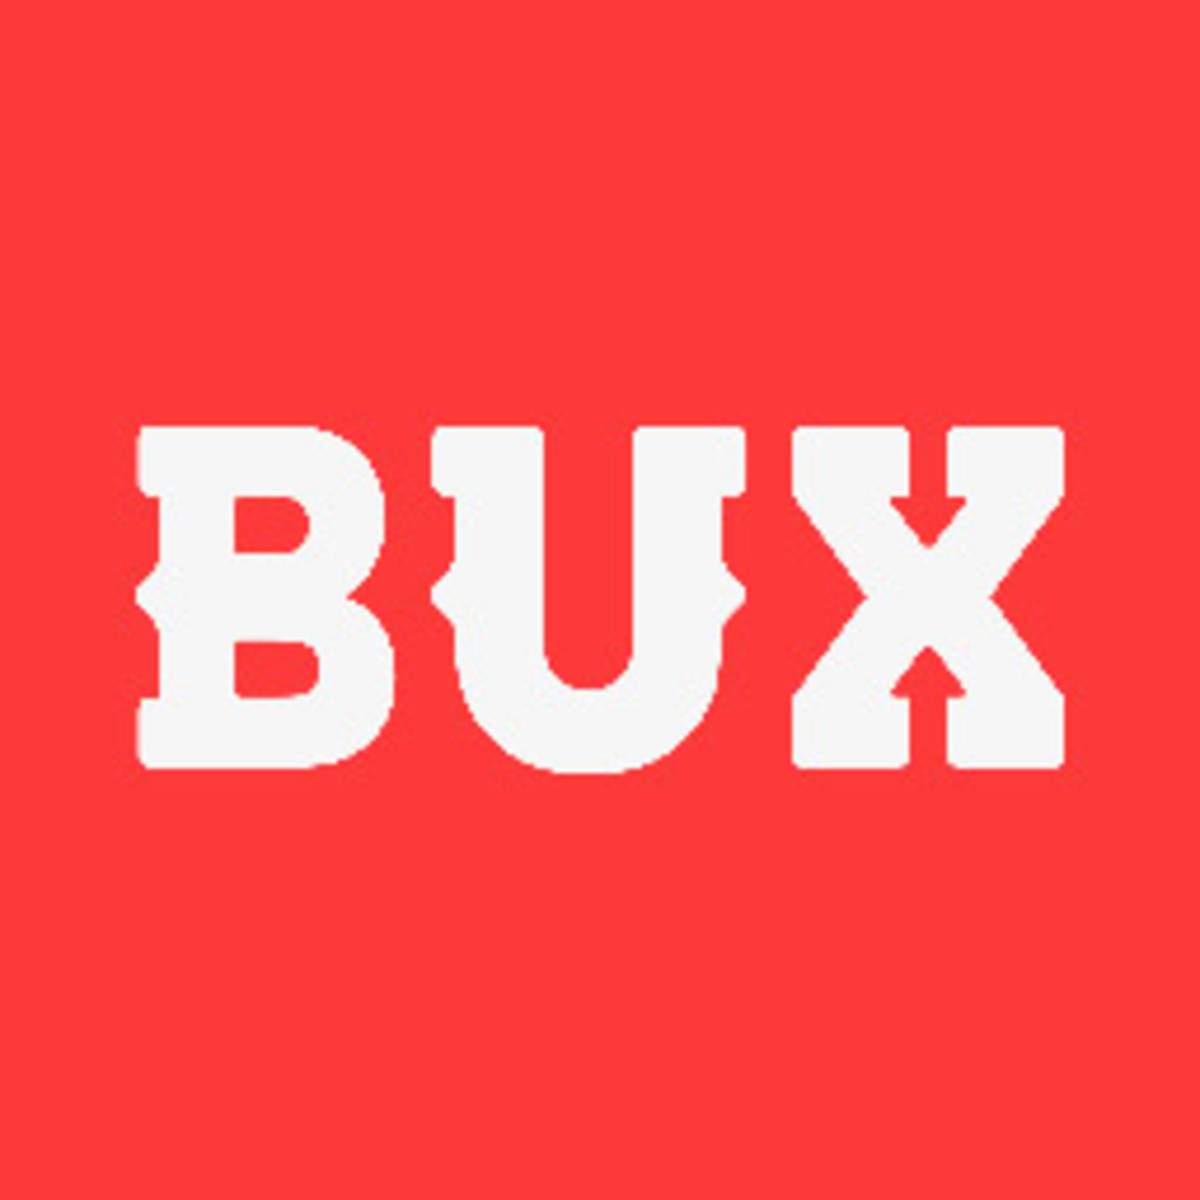 Bux is the new mobile trading platform. Learn to trade stocks from your smartphone!